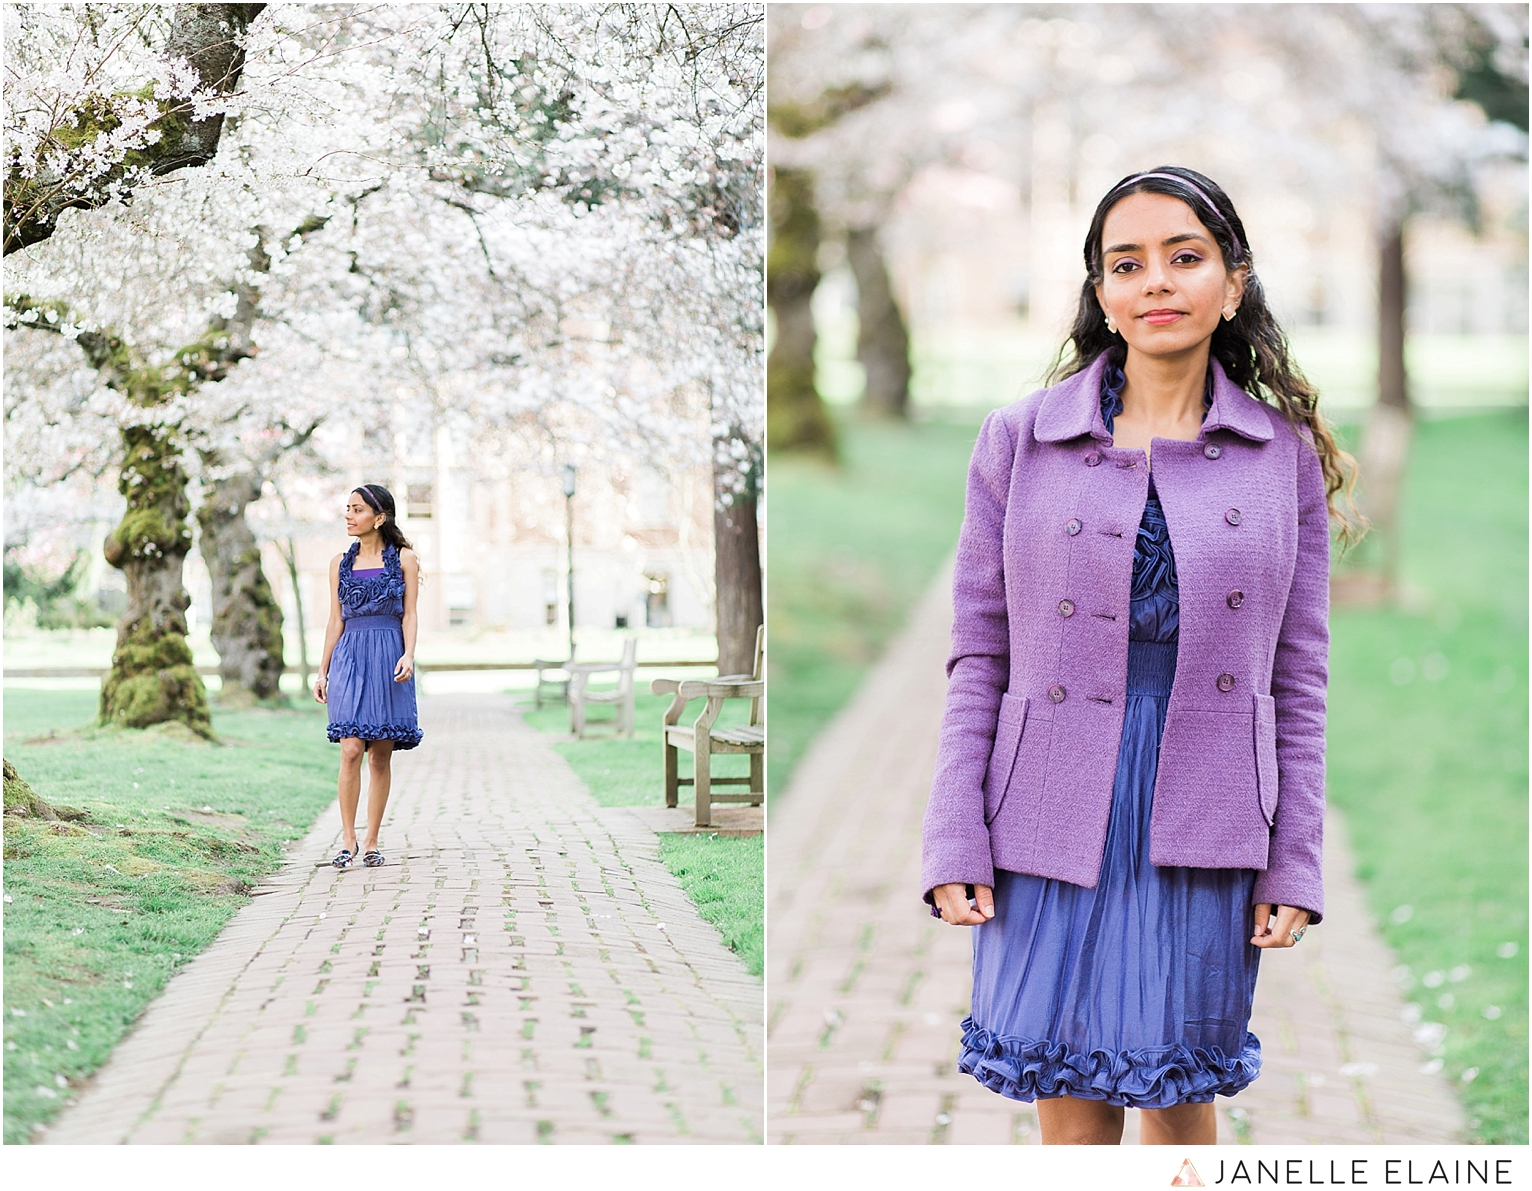 Sufience-Harkirat-spring portrait session-cherry blossoms-uw-seattle photographer janelle elaine-8.jpg